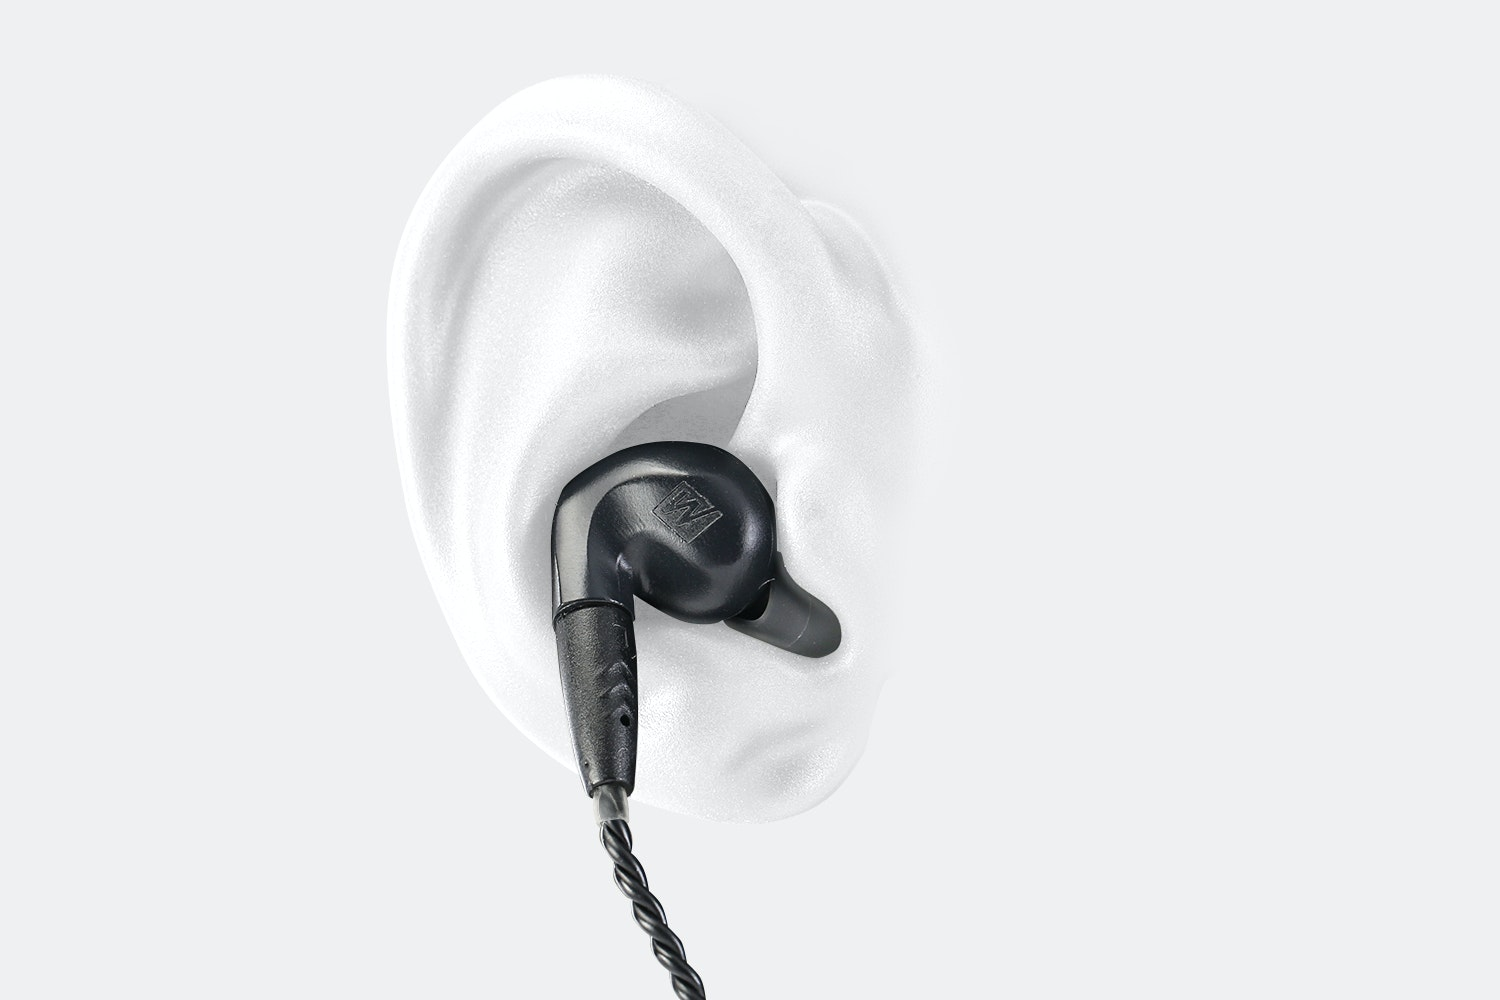 Massdrop x MEE Audio Pinnacle PX IEMs